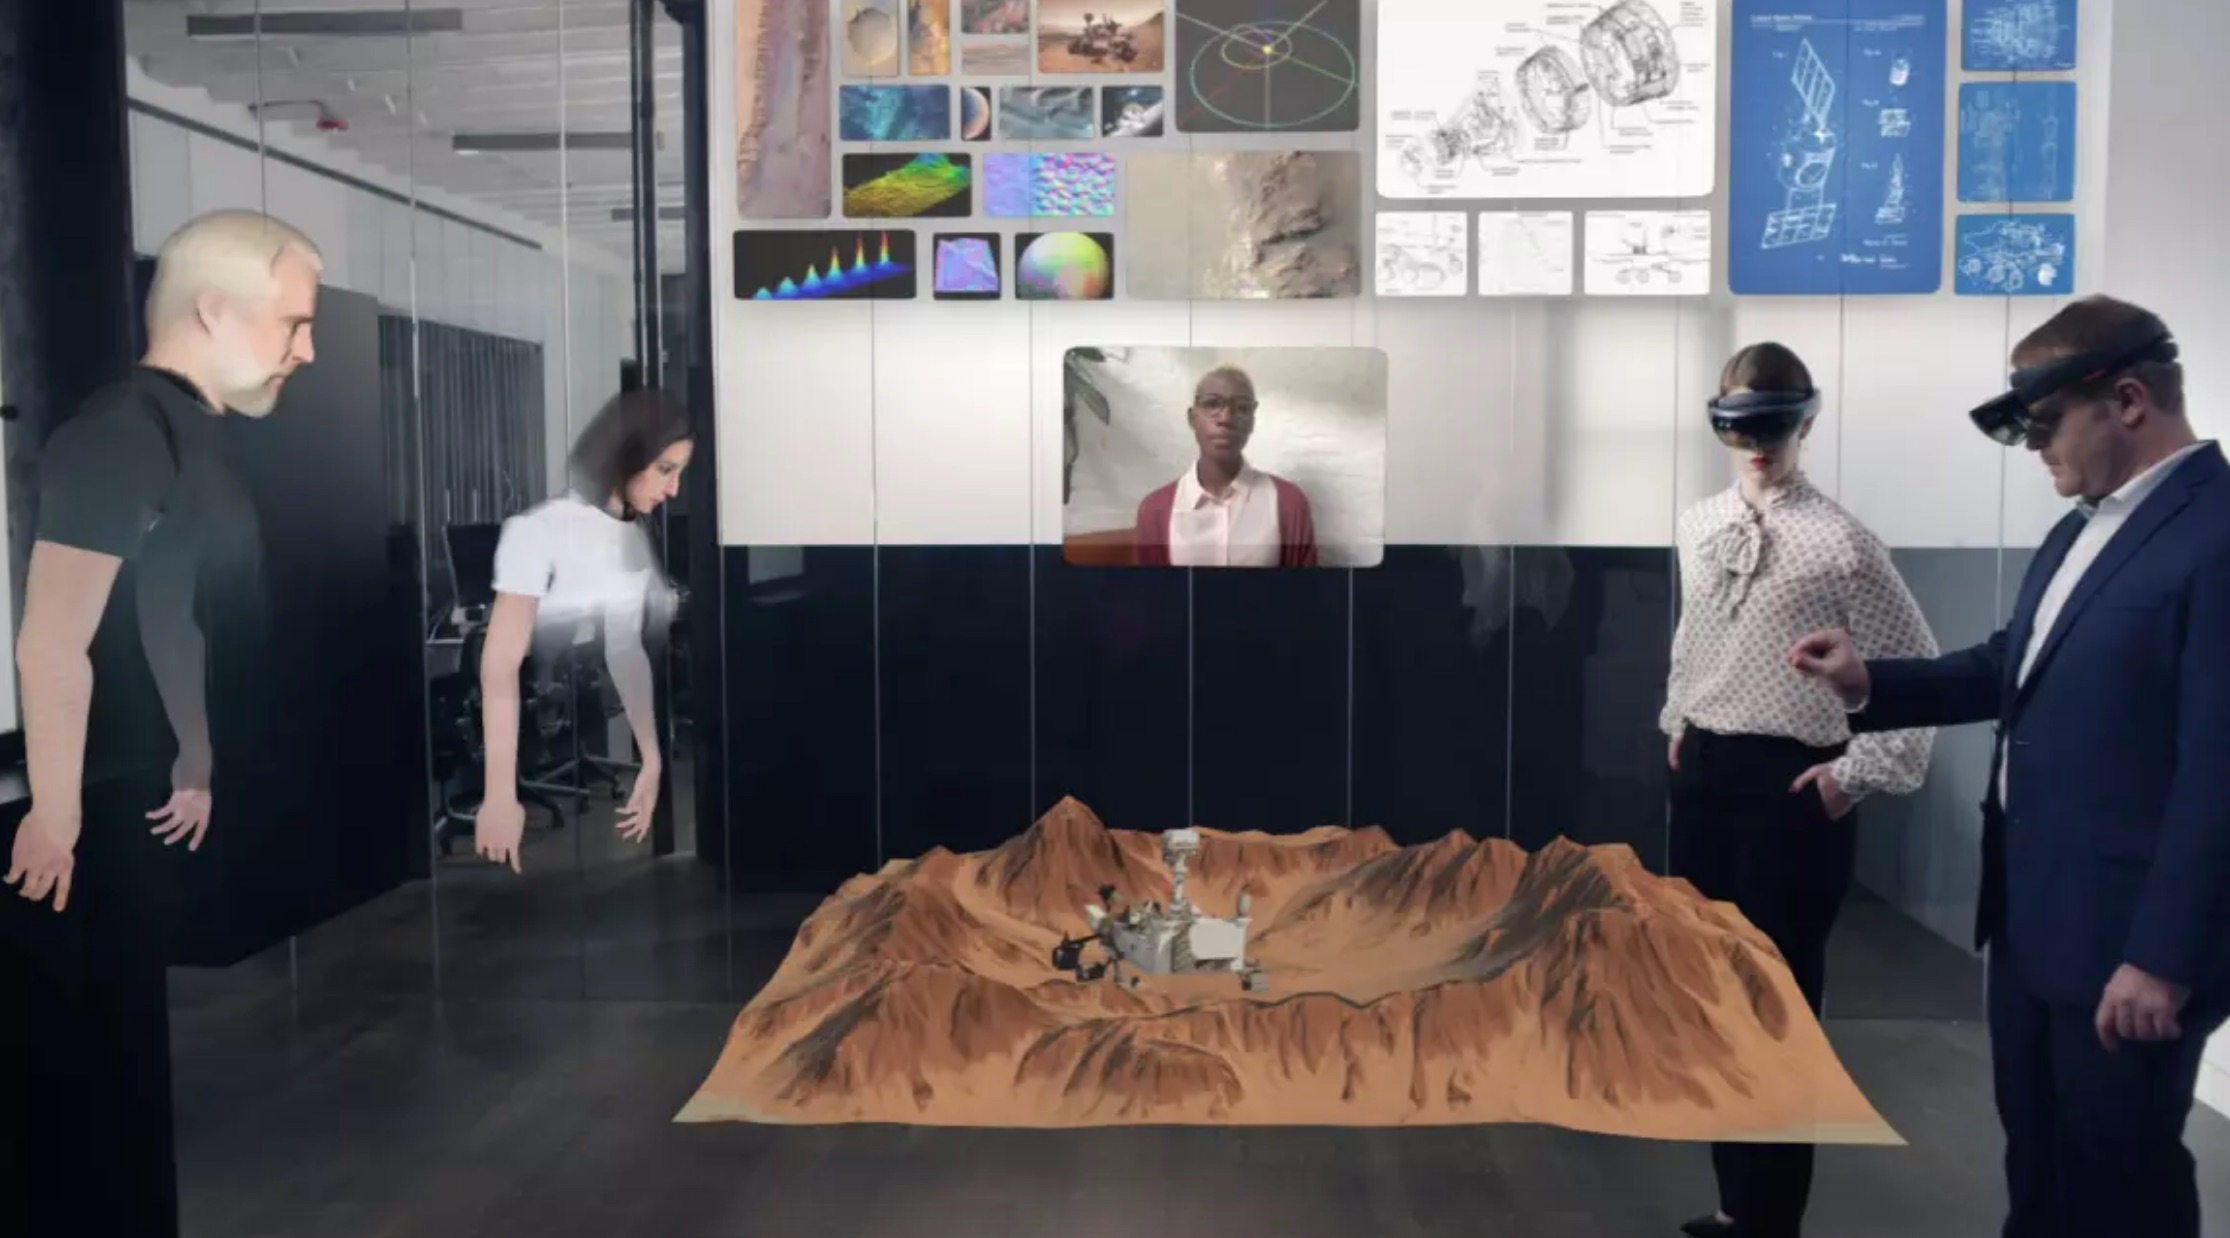 Augmented reality avatars looking at AR image